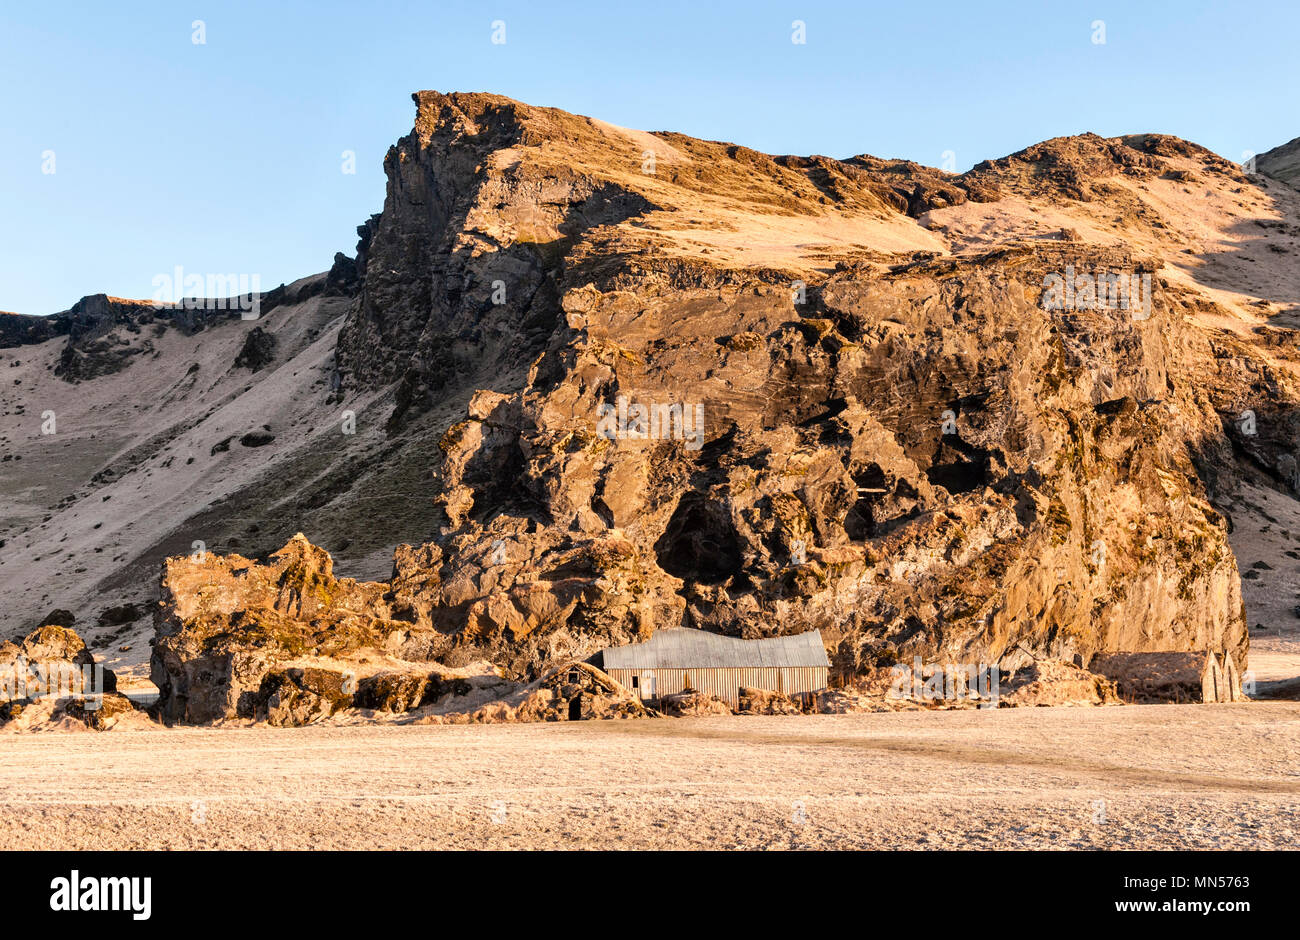 South Iceland. Drangurinn rock, in Drangshlíð below Eyjafjöll. In Icelandic legend it is the home of elves and was placed here by Grettir the Strong - Stock Image